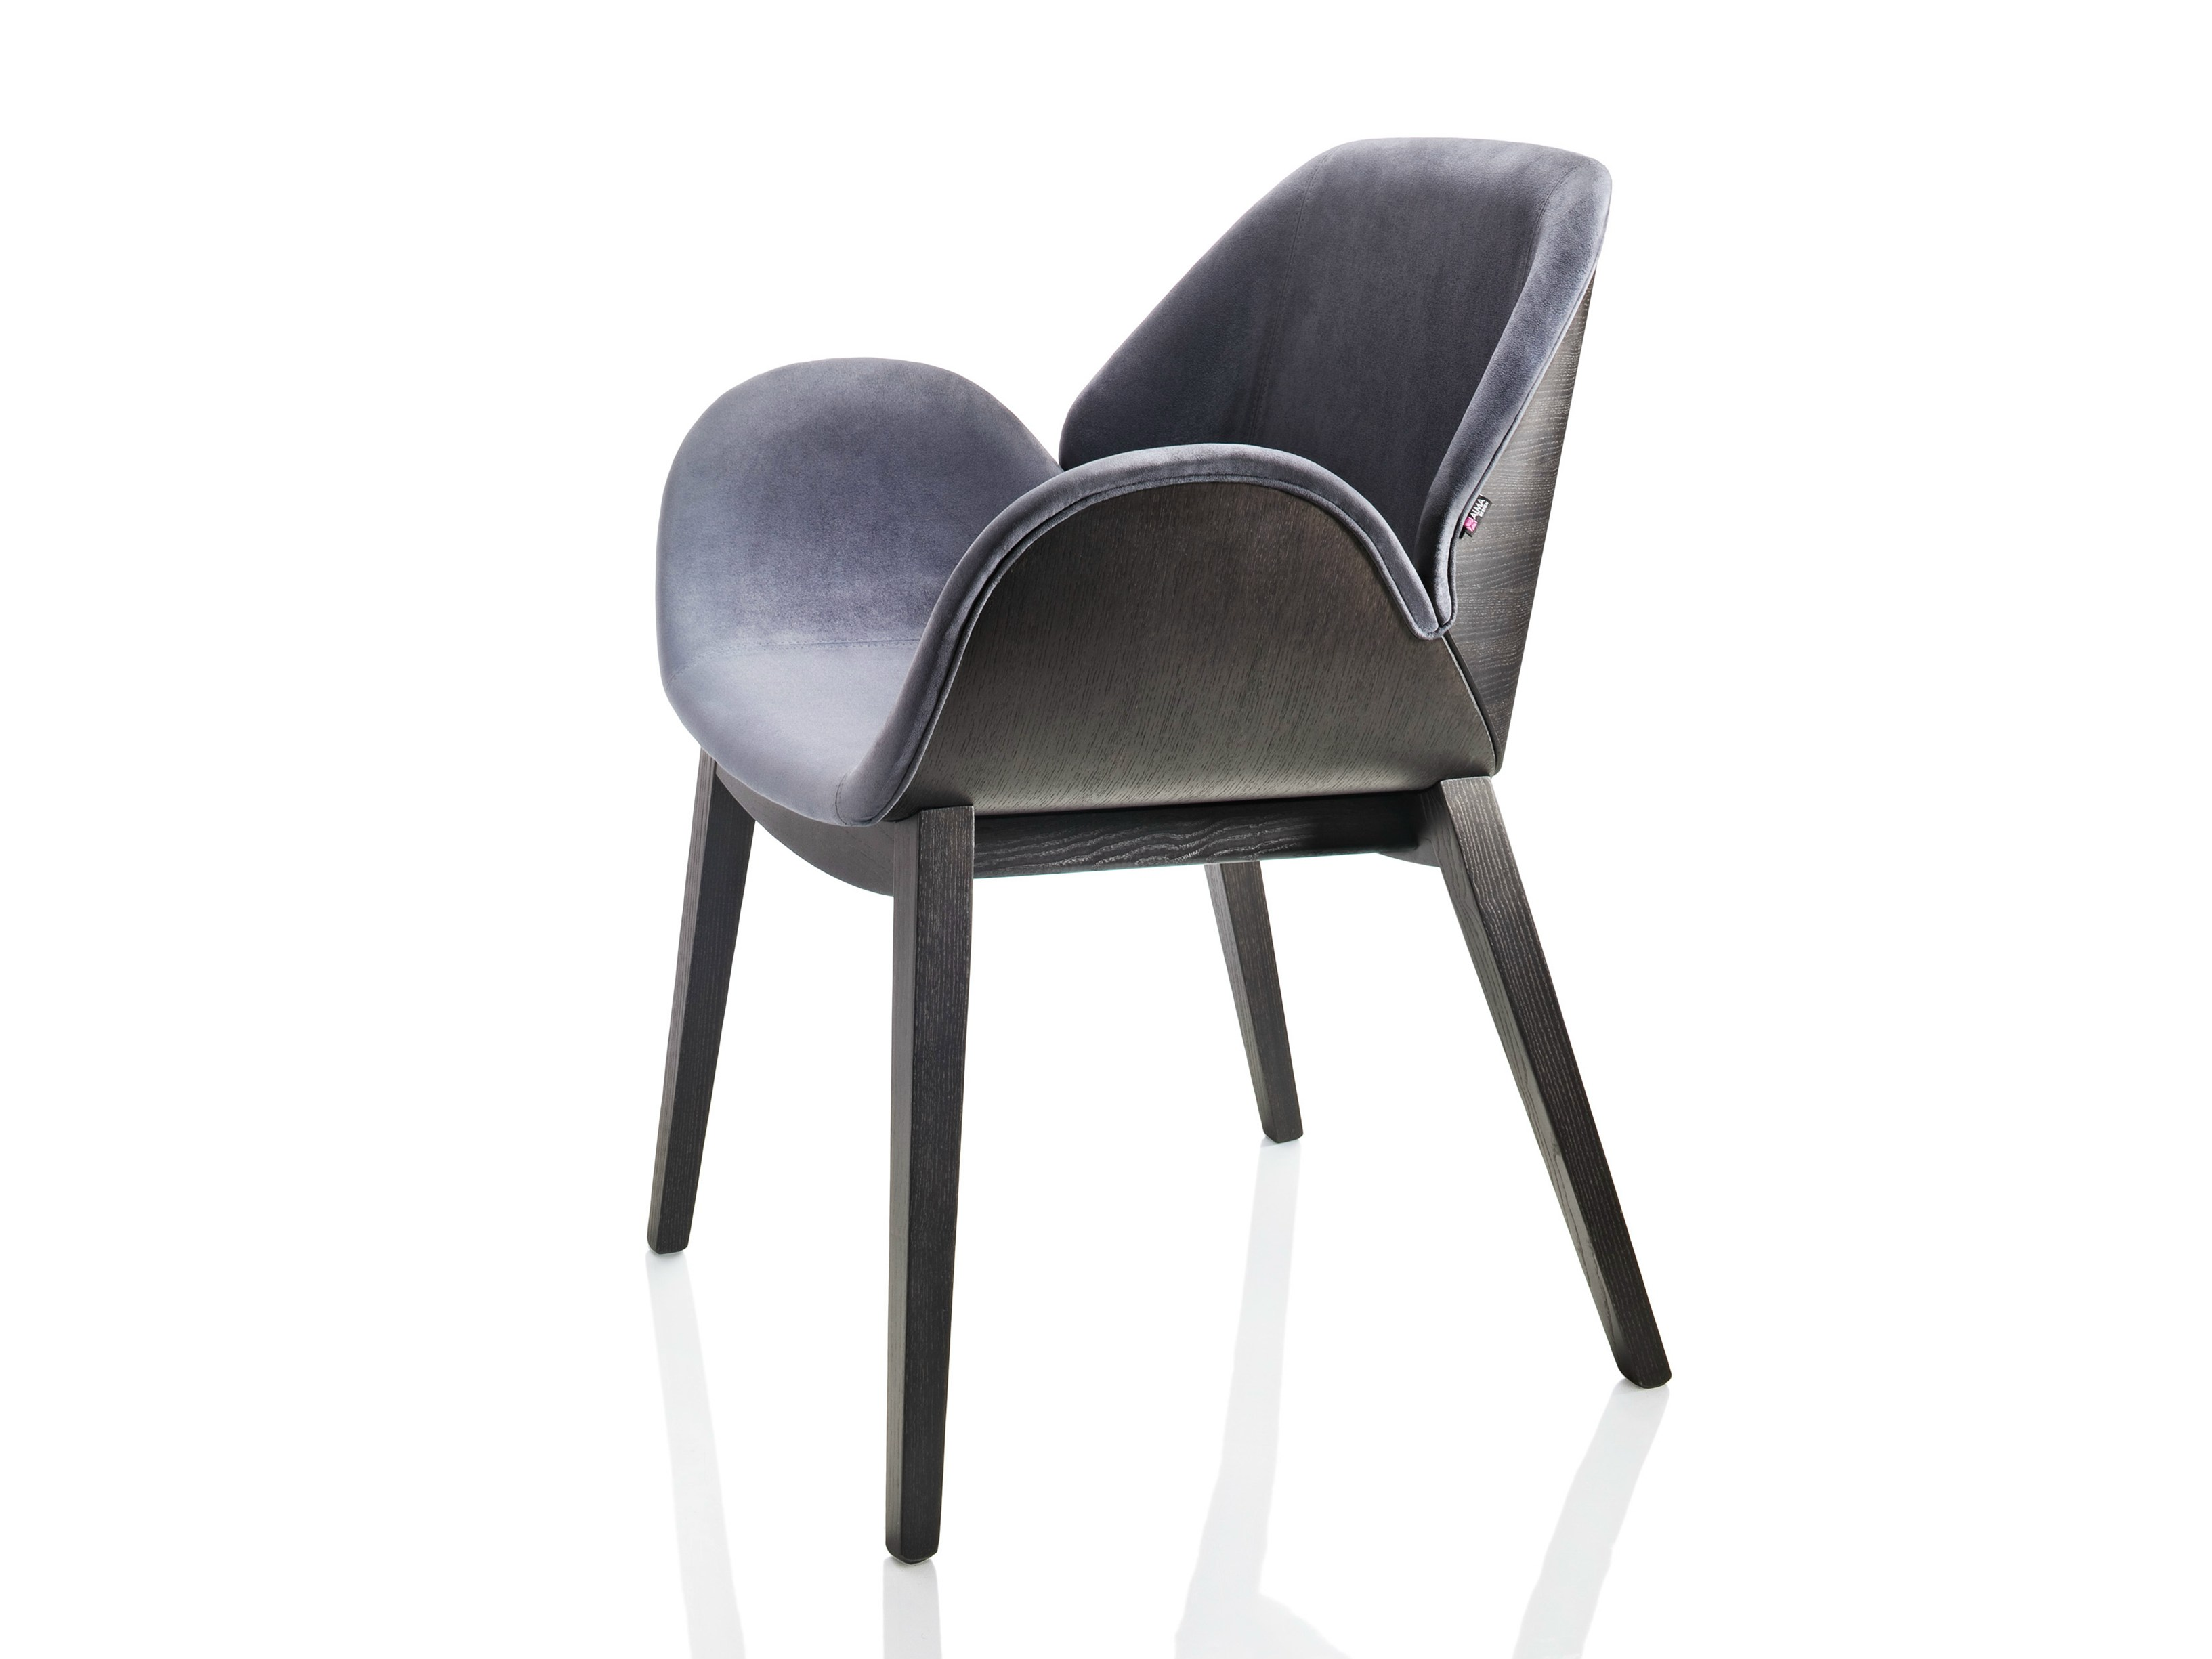 Upholstered Chair X WOOD SOFT X Chair Collection By ALMA DESIGN Design  Mario Mazzer